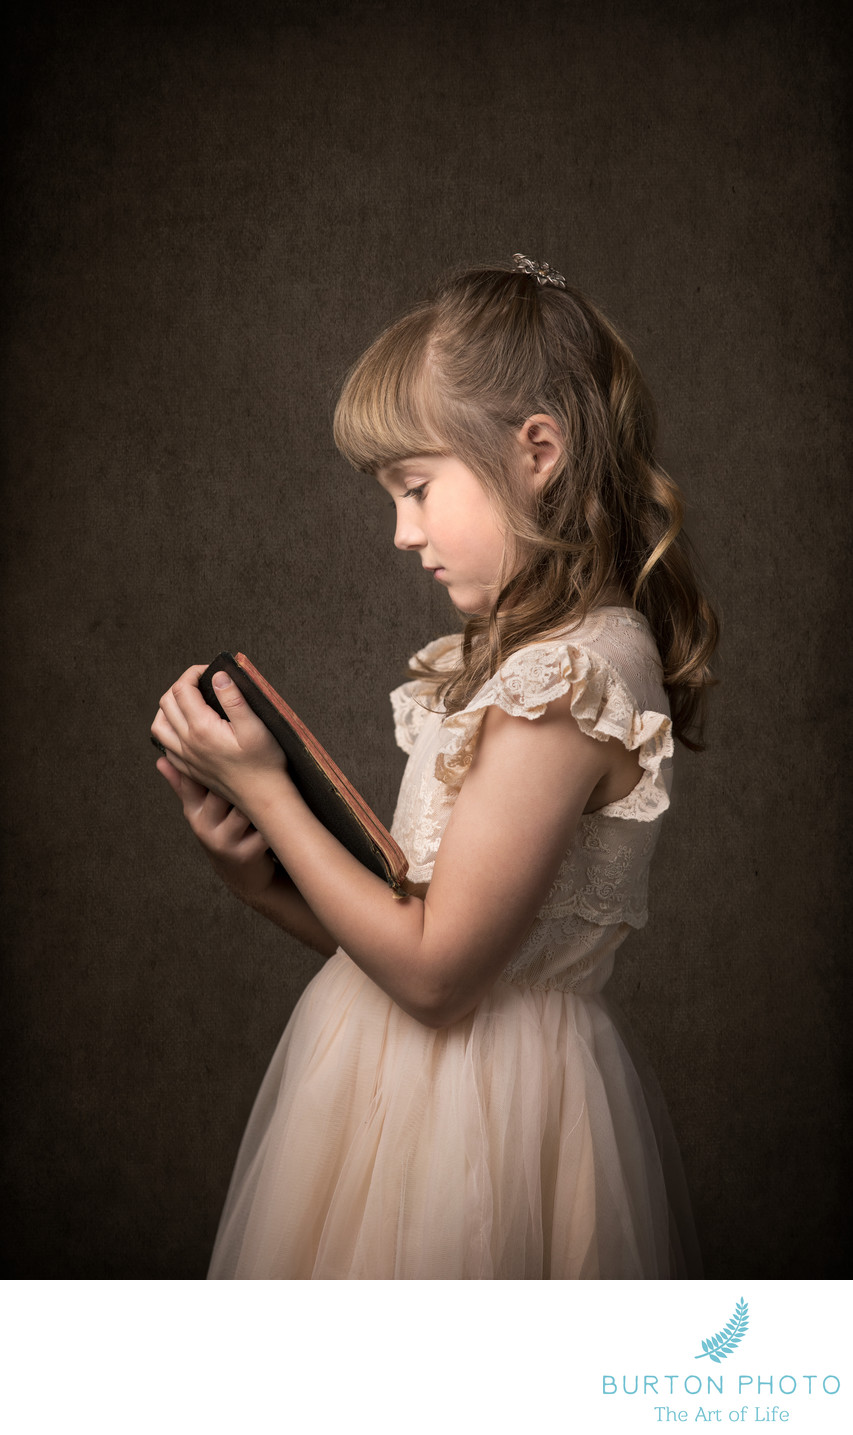 Studio Portrait Boone Girl with Antique Bible